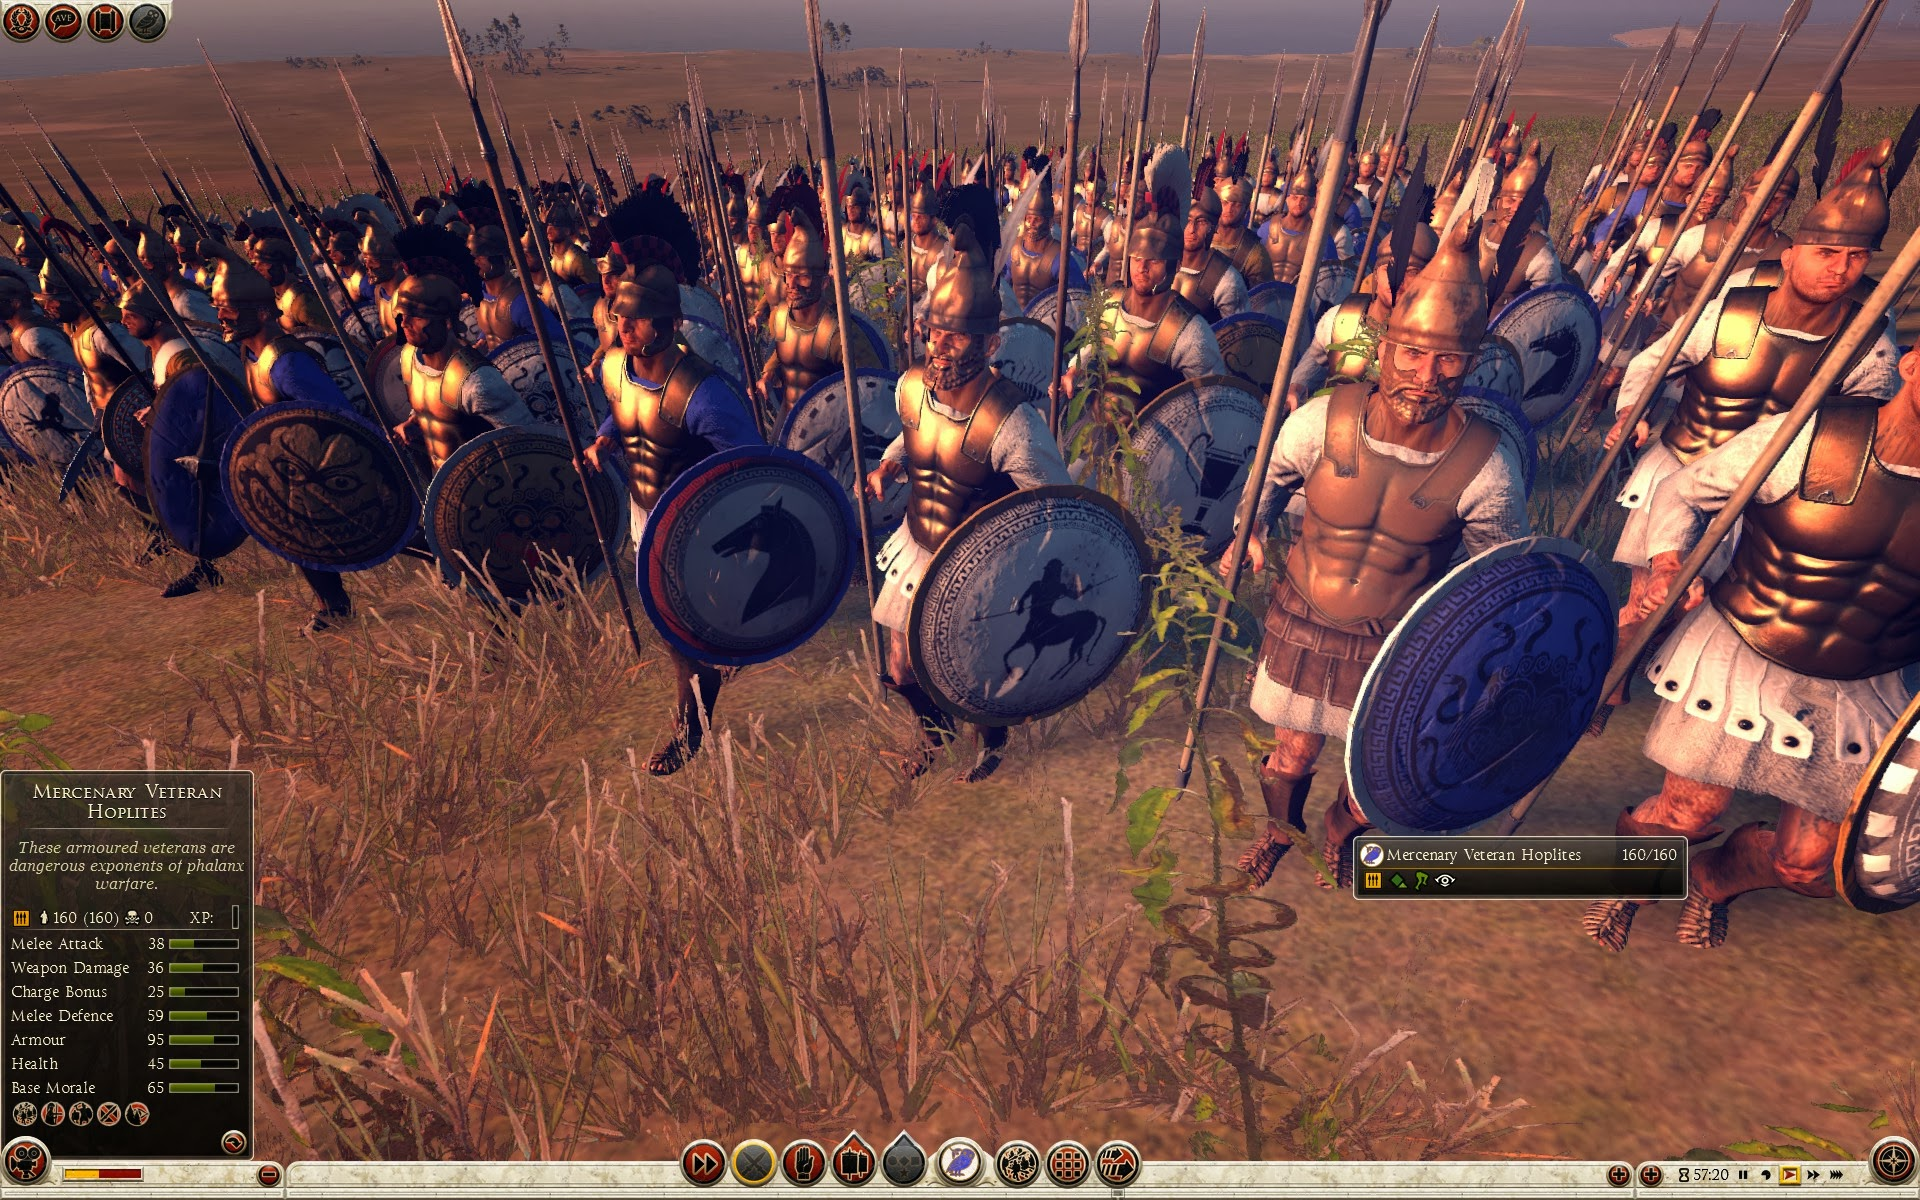 Mercenary Veteran Hoplites